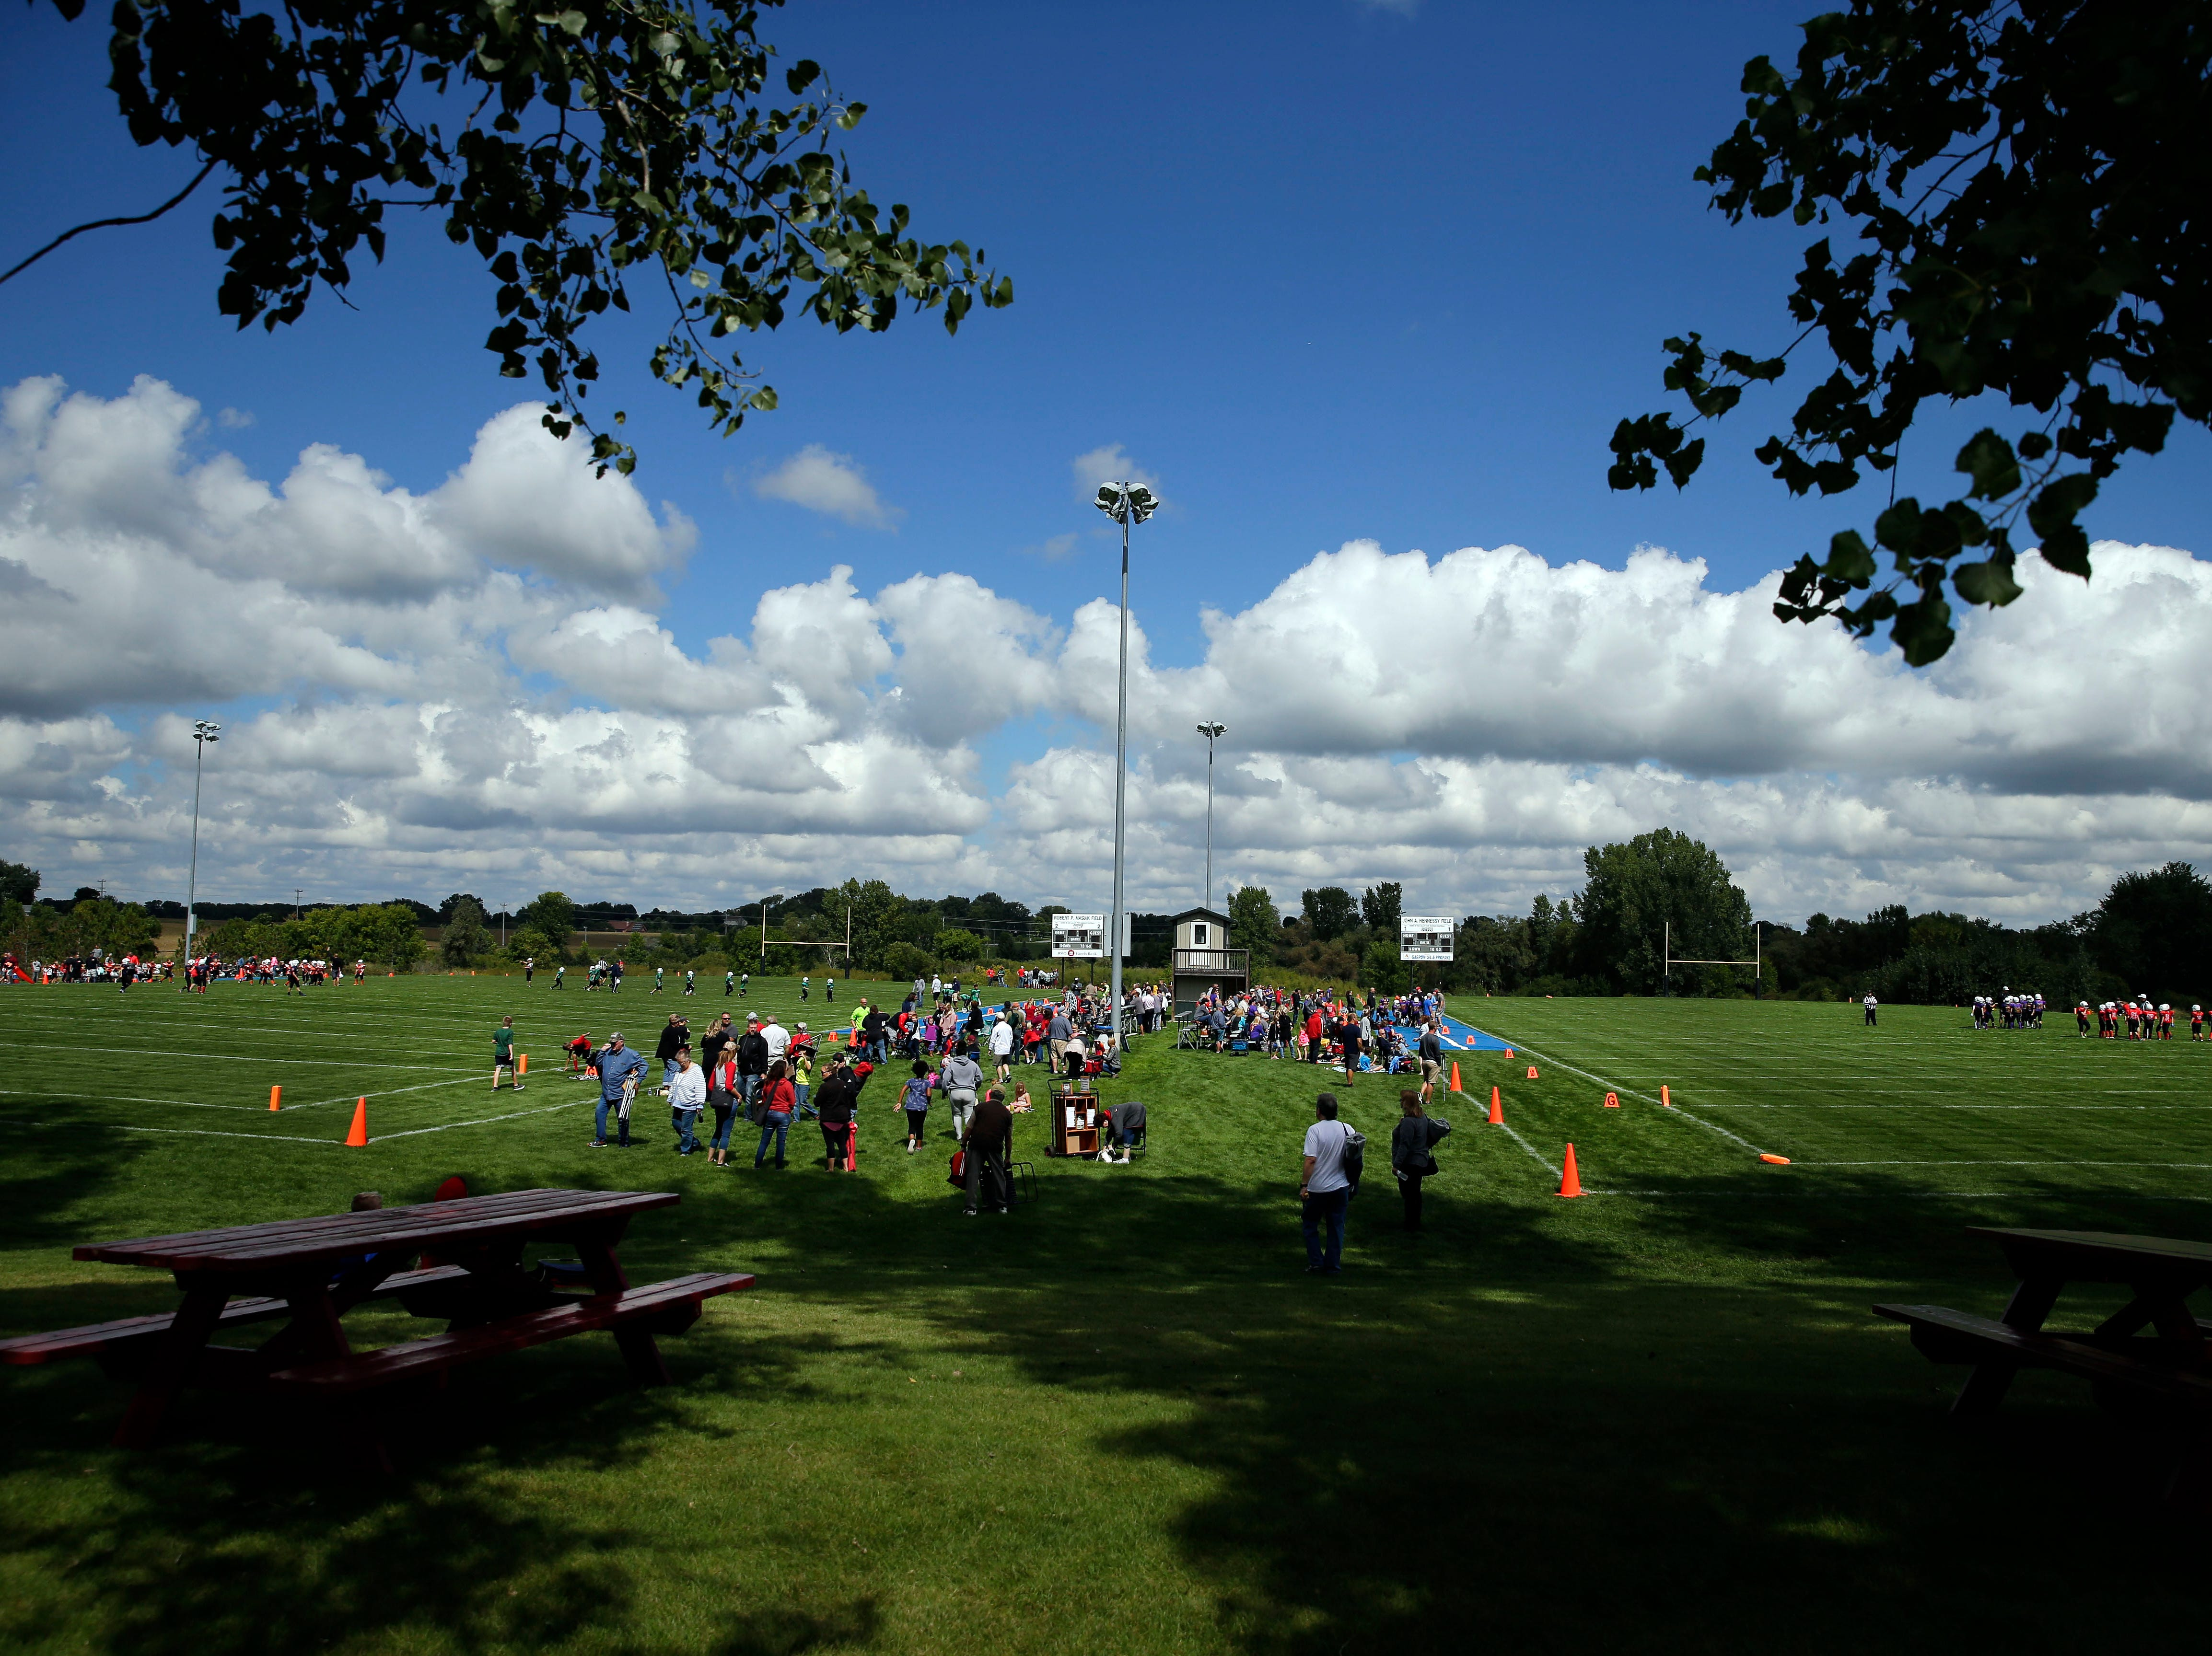 Fox Valley Pop Warner Football opens the season with cool temperatures Saturday, September 8, 2018, at Plamann Park in Grand Chute, Wis.Ron Page/USA TODAY NETWORK-Wisconsin